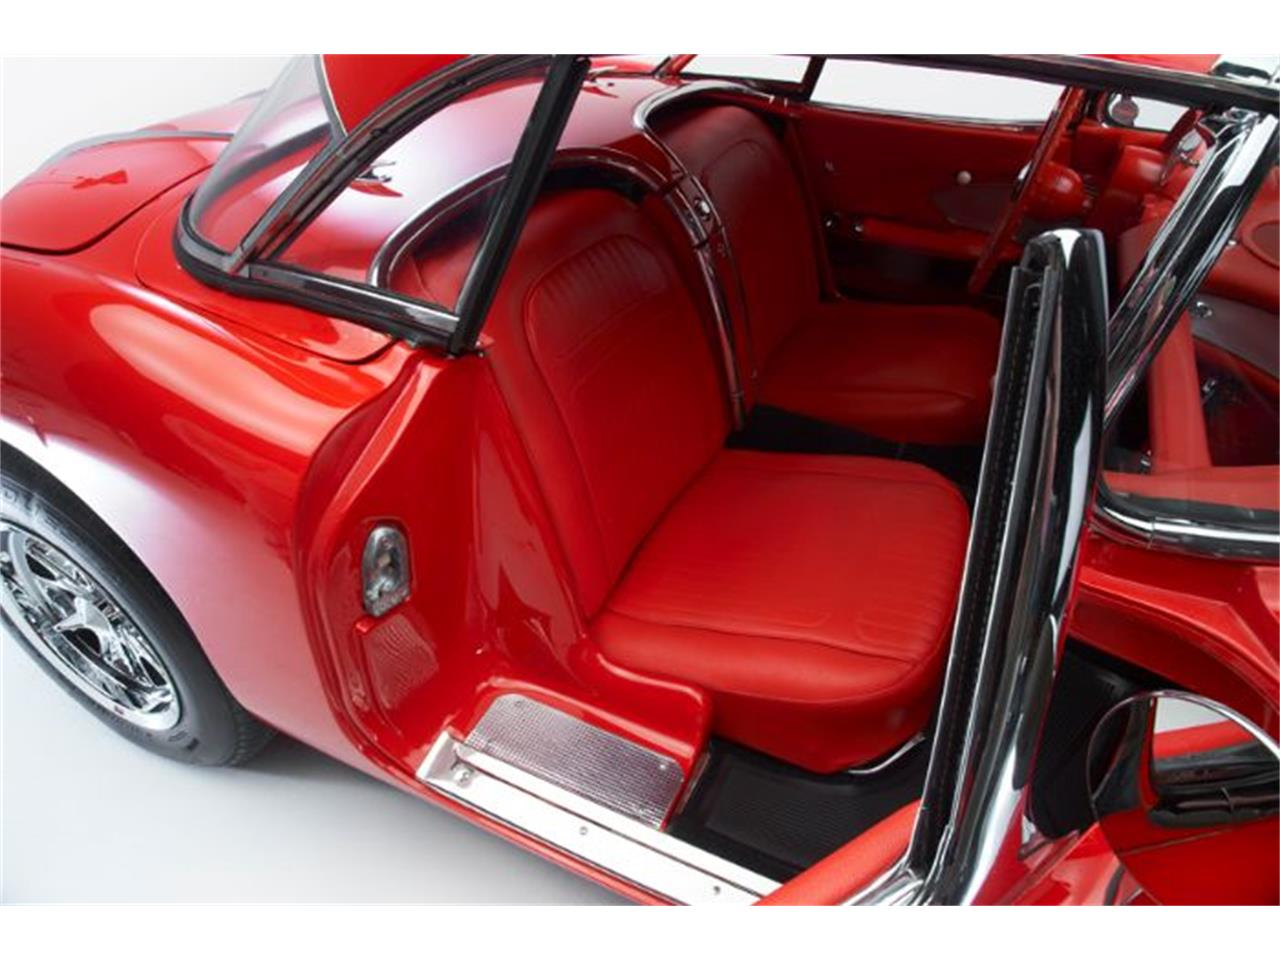 Large Picture of '58 Chevrolet Corvette located in Cadillac Michigan Offered by Classic Car Deals - KCRC